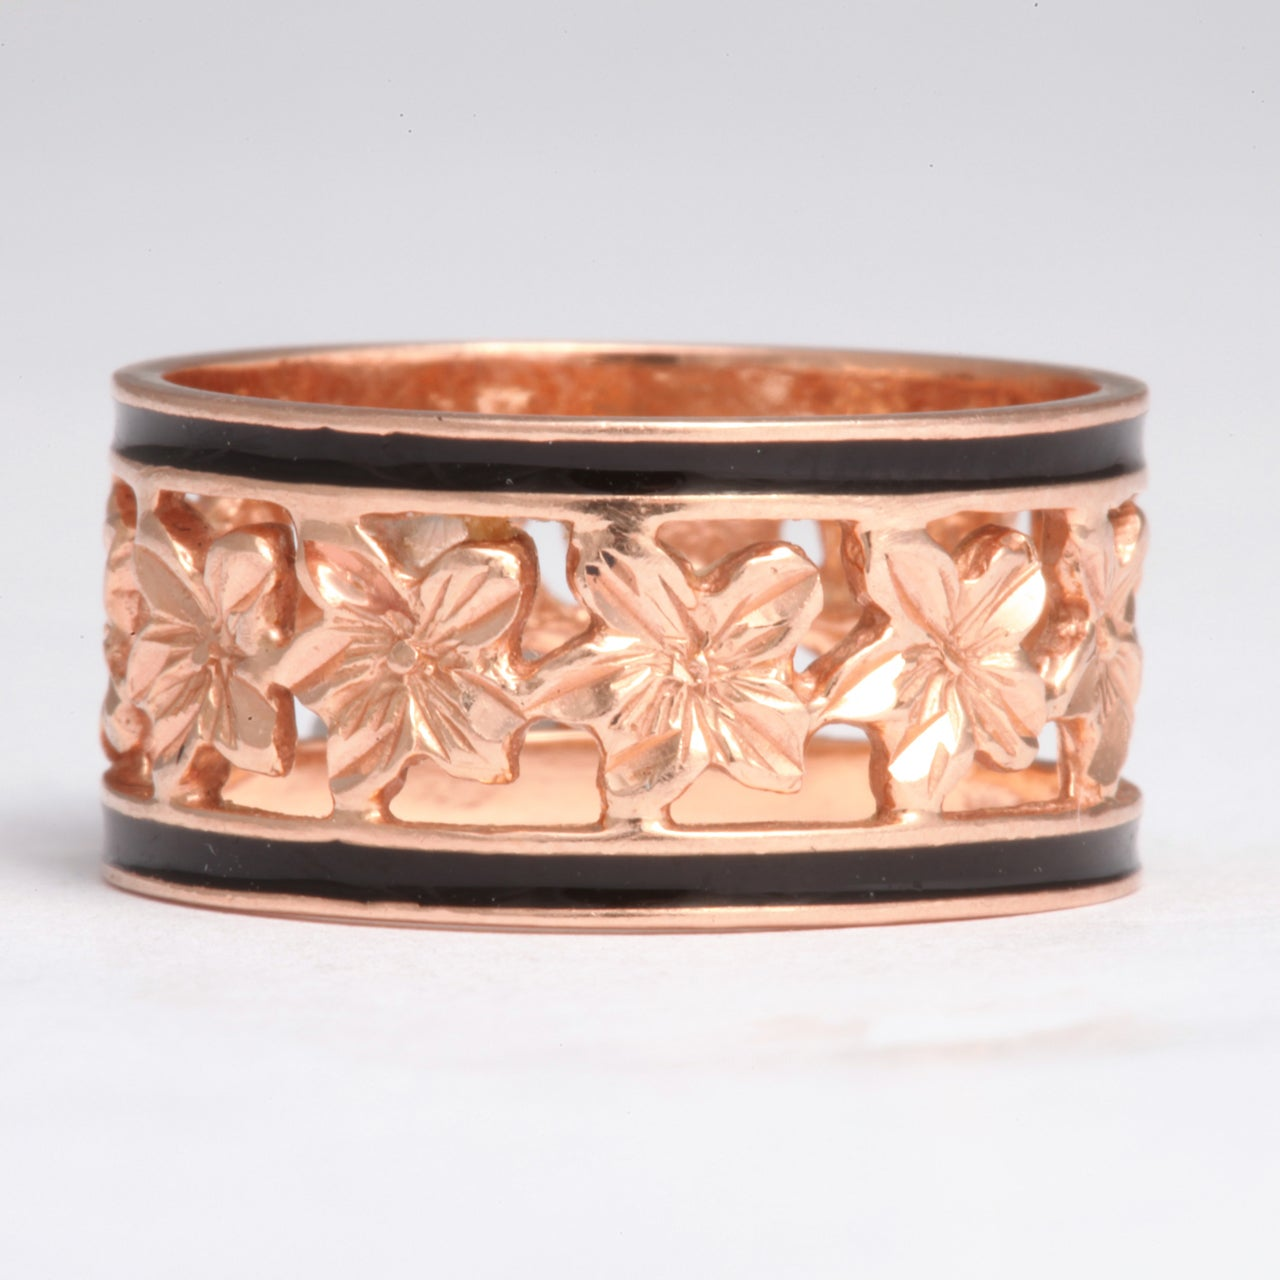 Women's or Men's 14 Karat Gold Wedding Band with Ivy Leaves and Enamel, circa 1870 For Sale